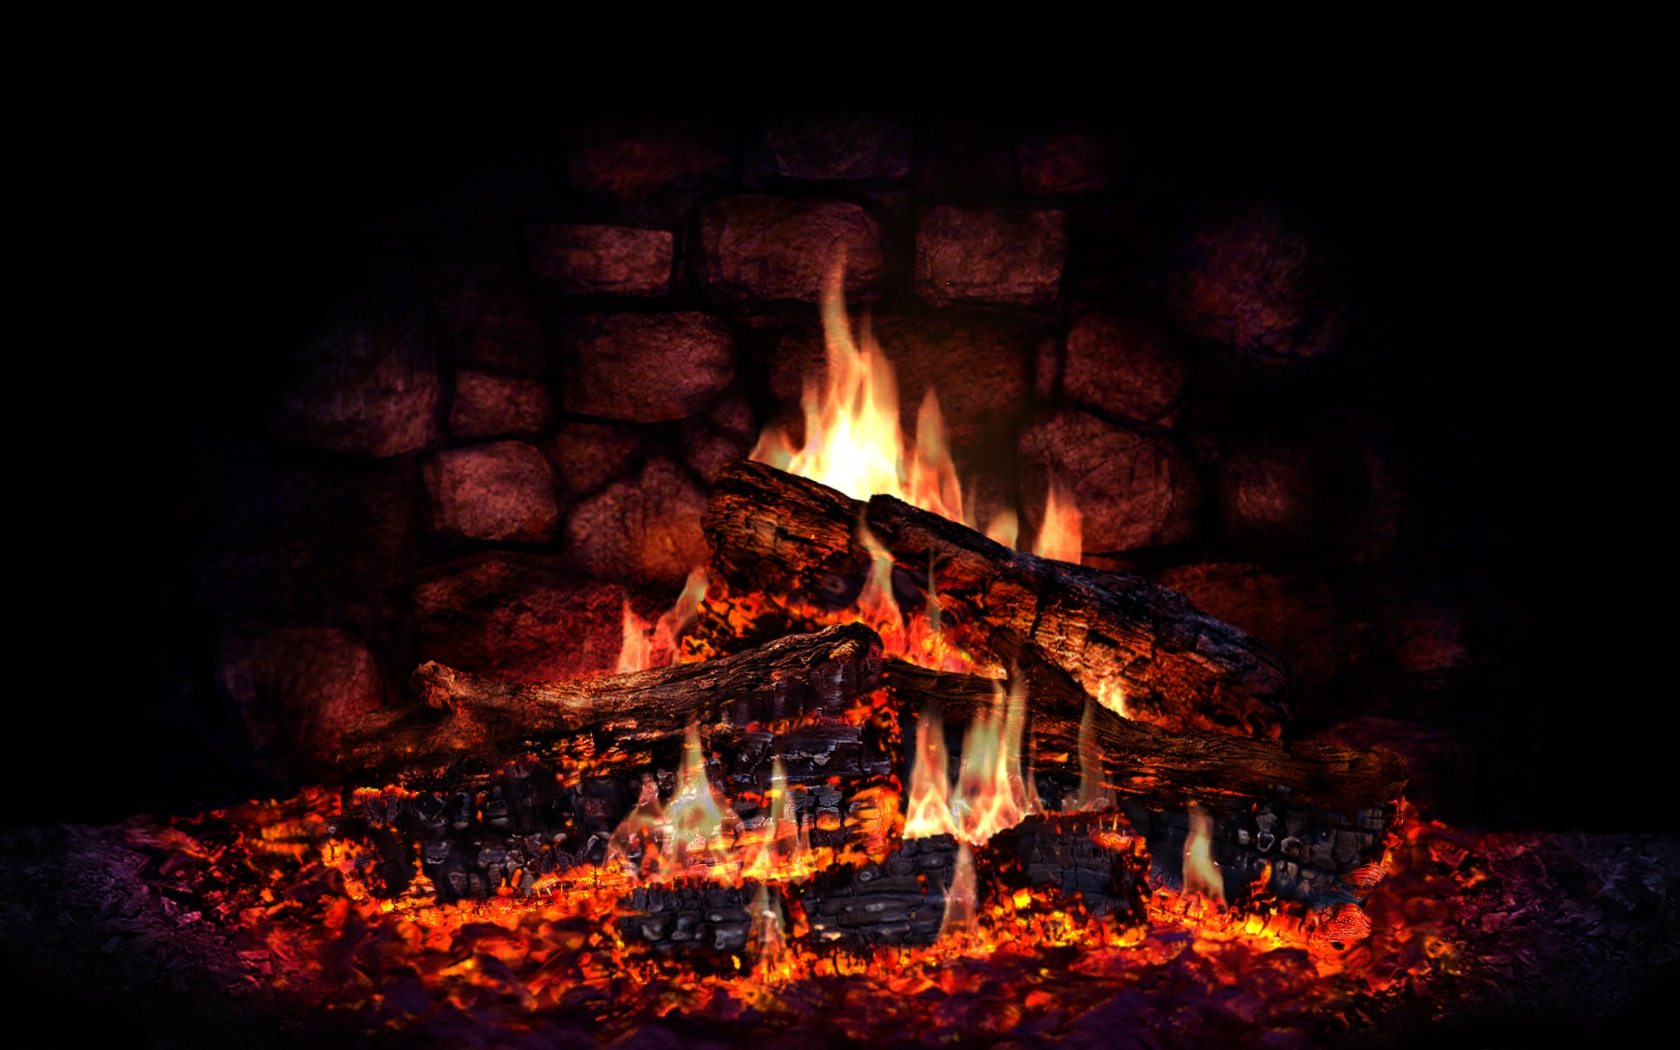 3d Moving Wallpaper Download For Windows 7 9 Lovely Hd Fireplace Wallpapers